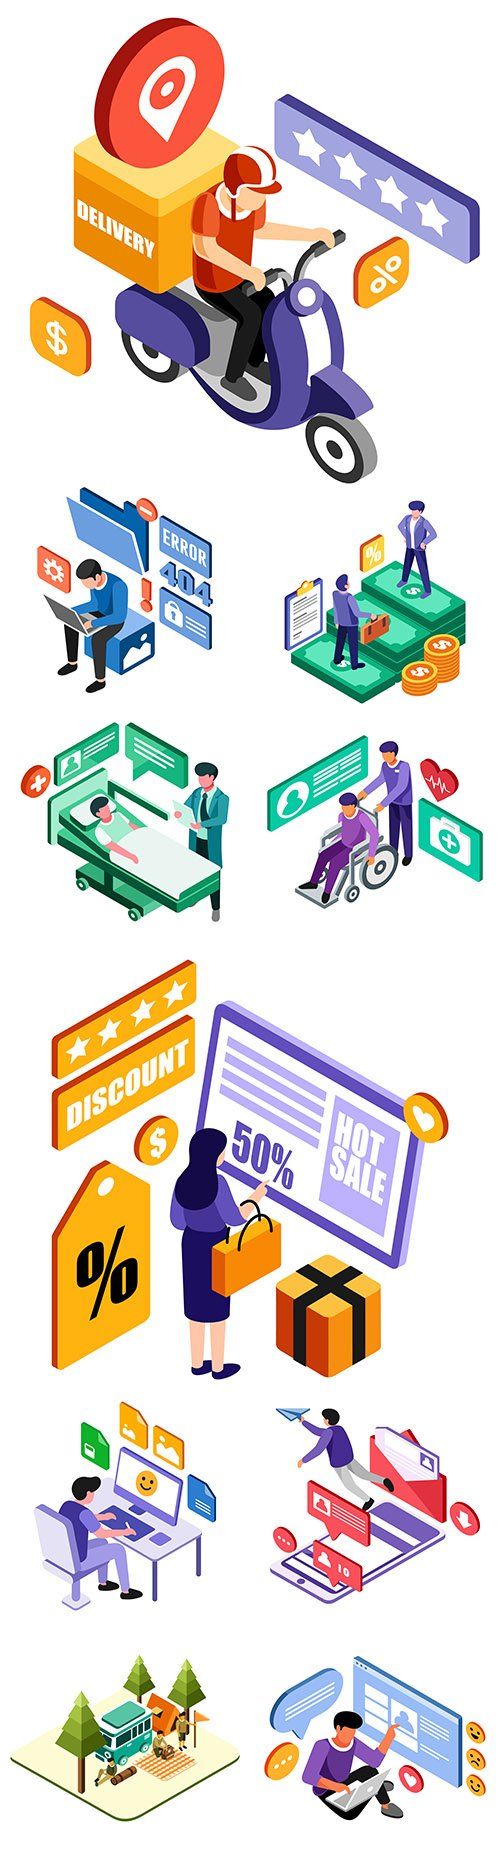 People and internet technology 3d isometric design